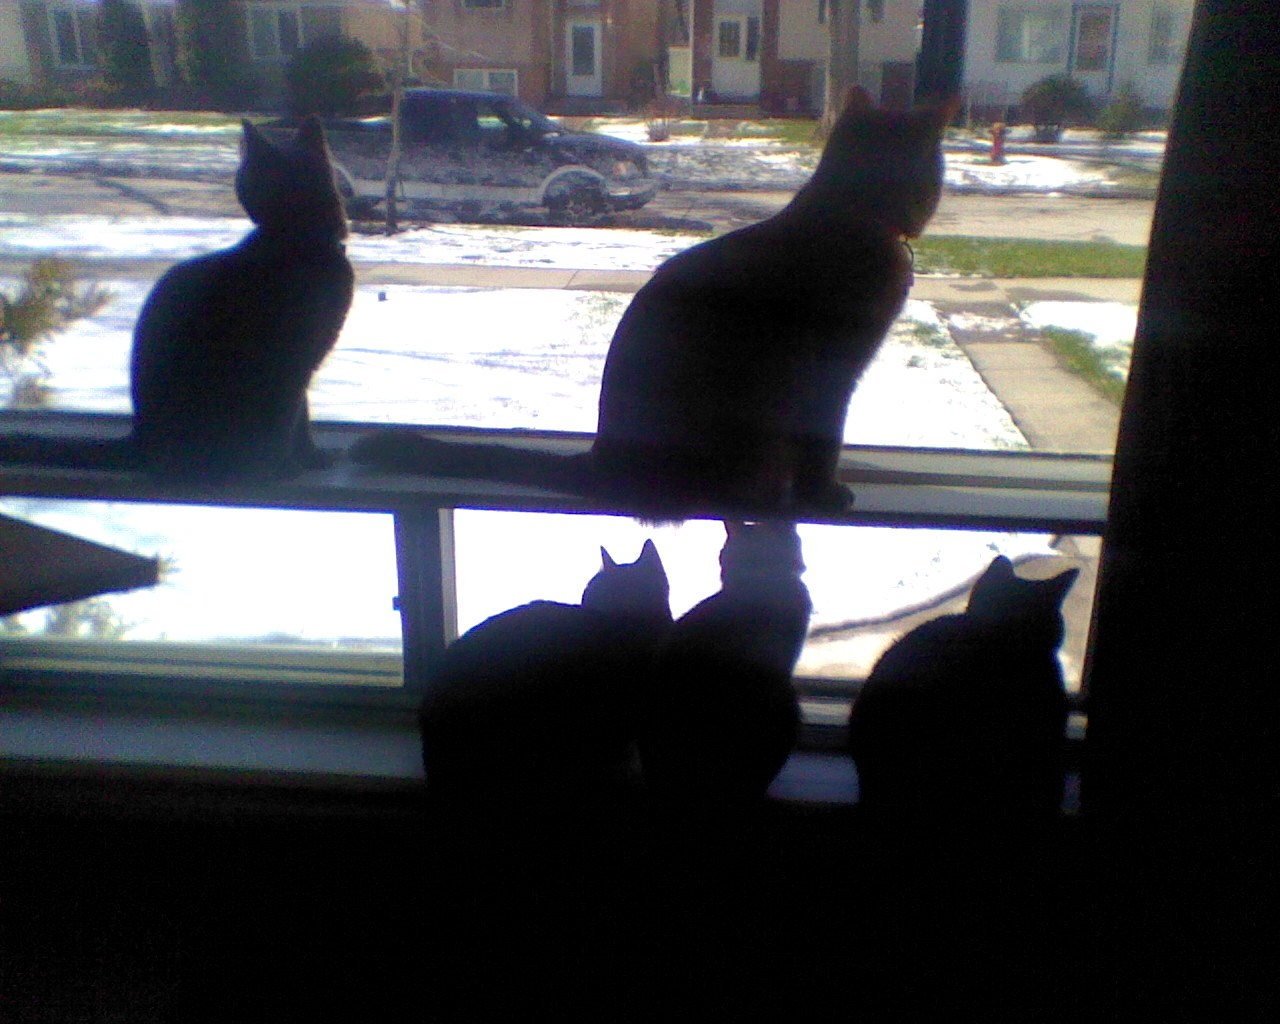 The Gang Looking Out The Window